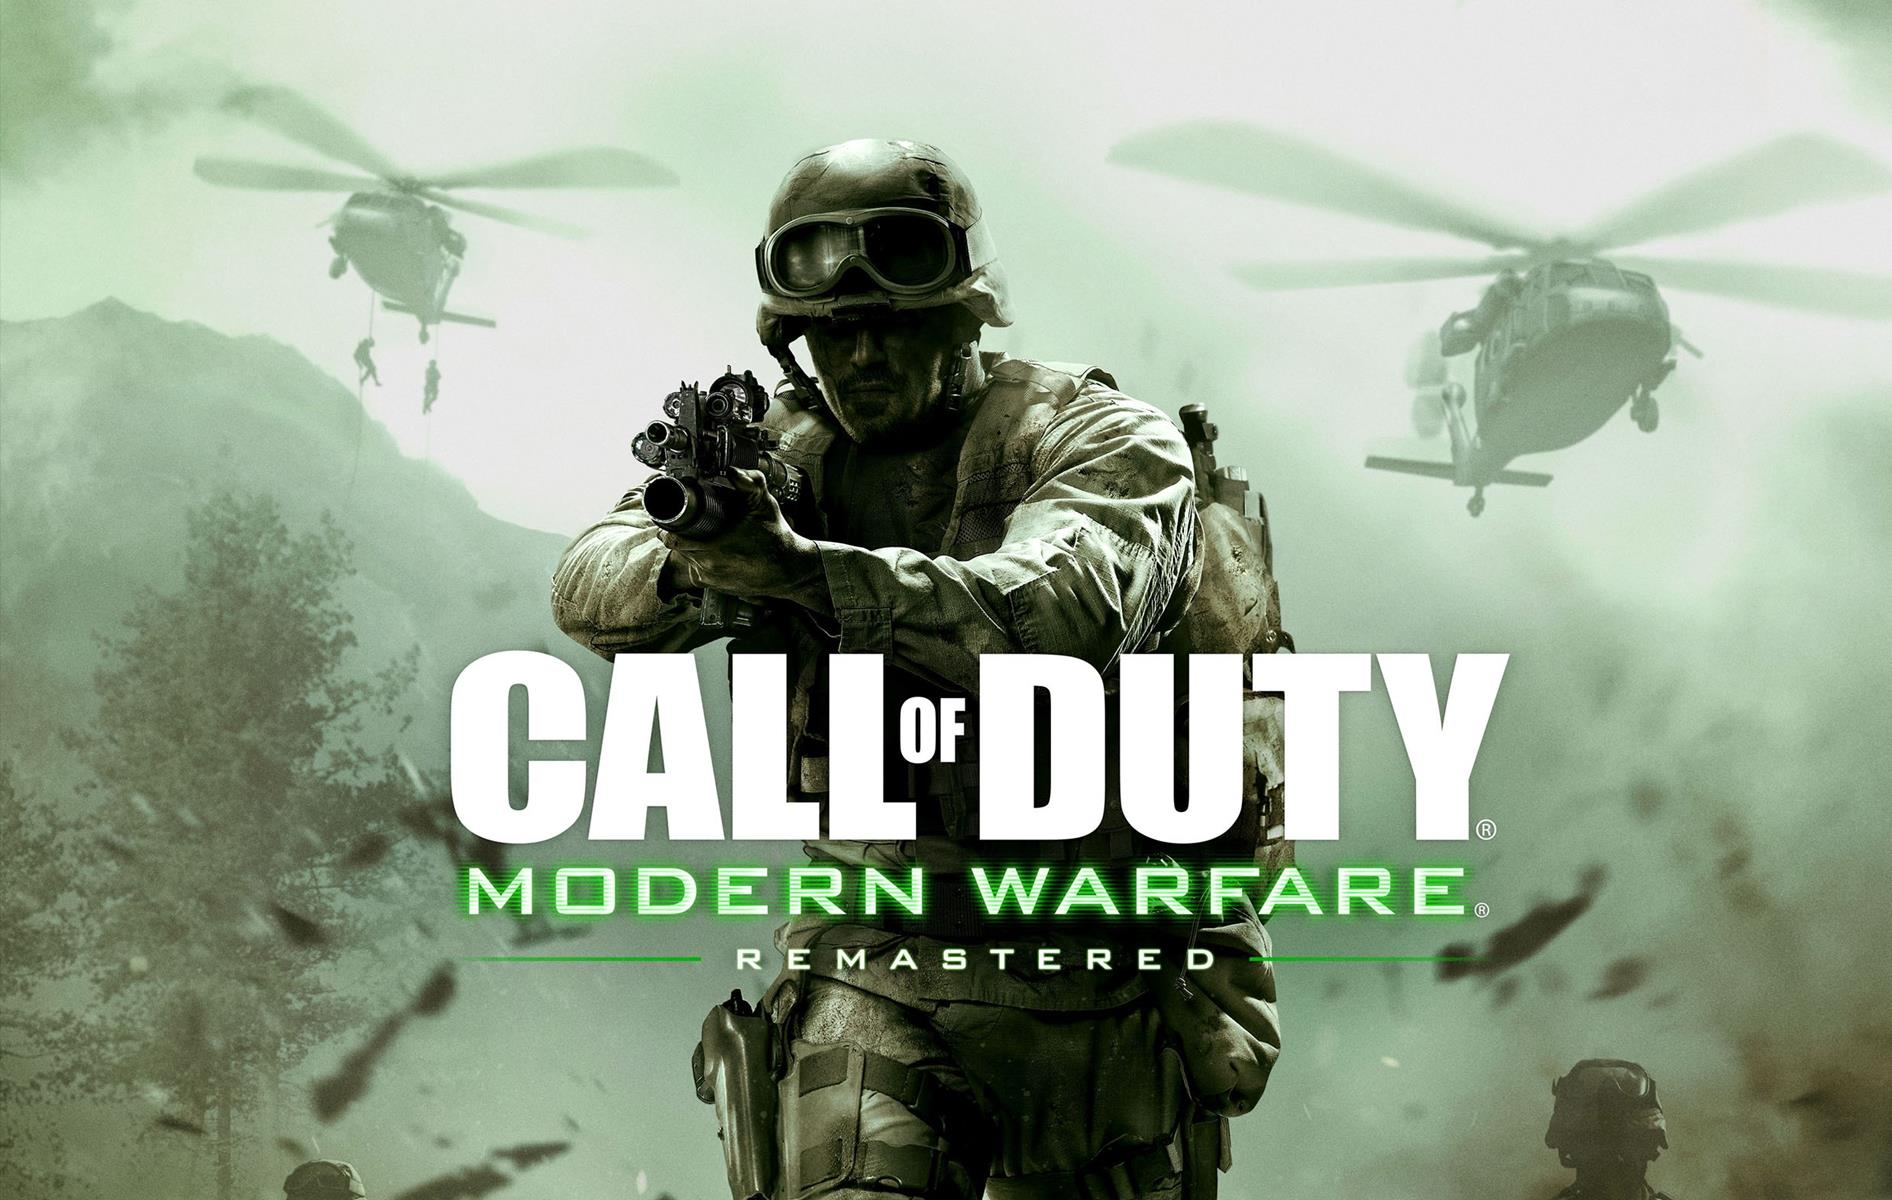 Call of Duty: Modern Warfare Remastered Campaign Now Available First on PS4